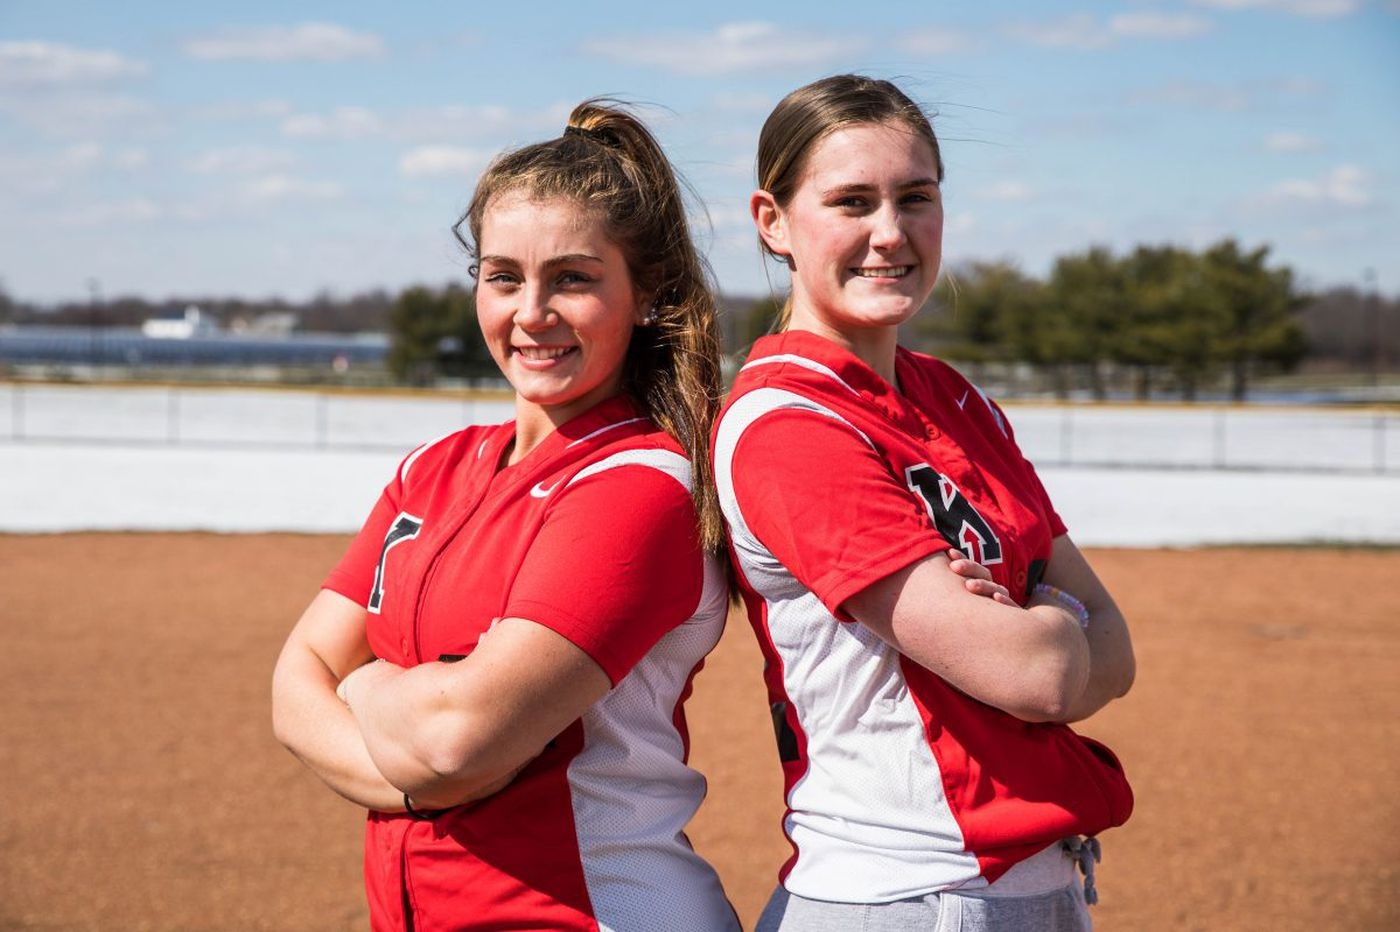 Injury affects the Kingsway softball team but not their friendship